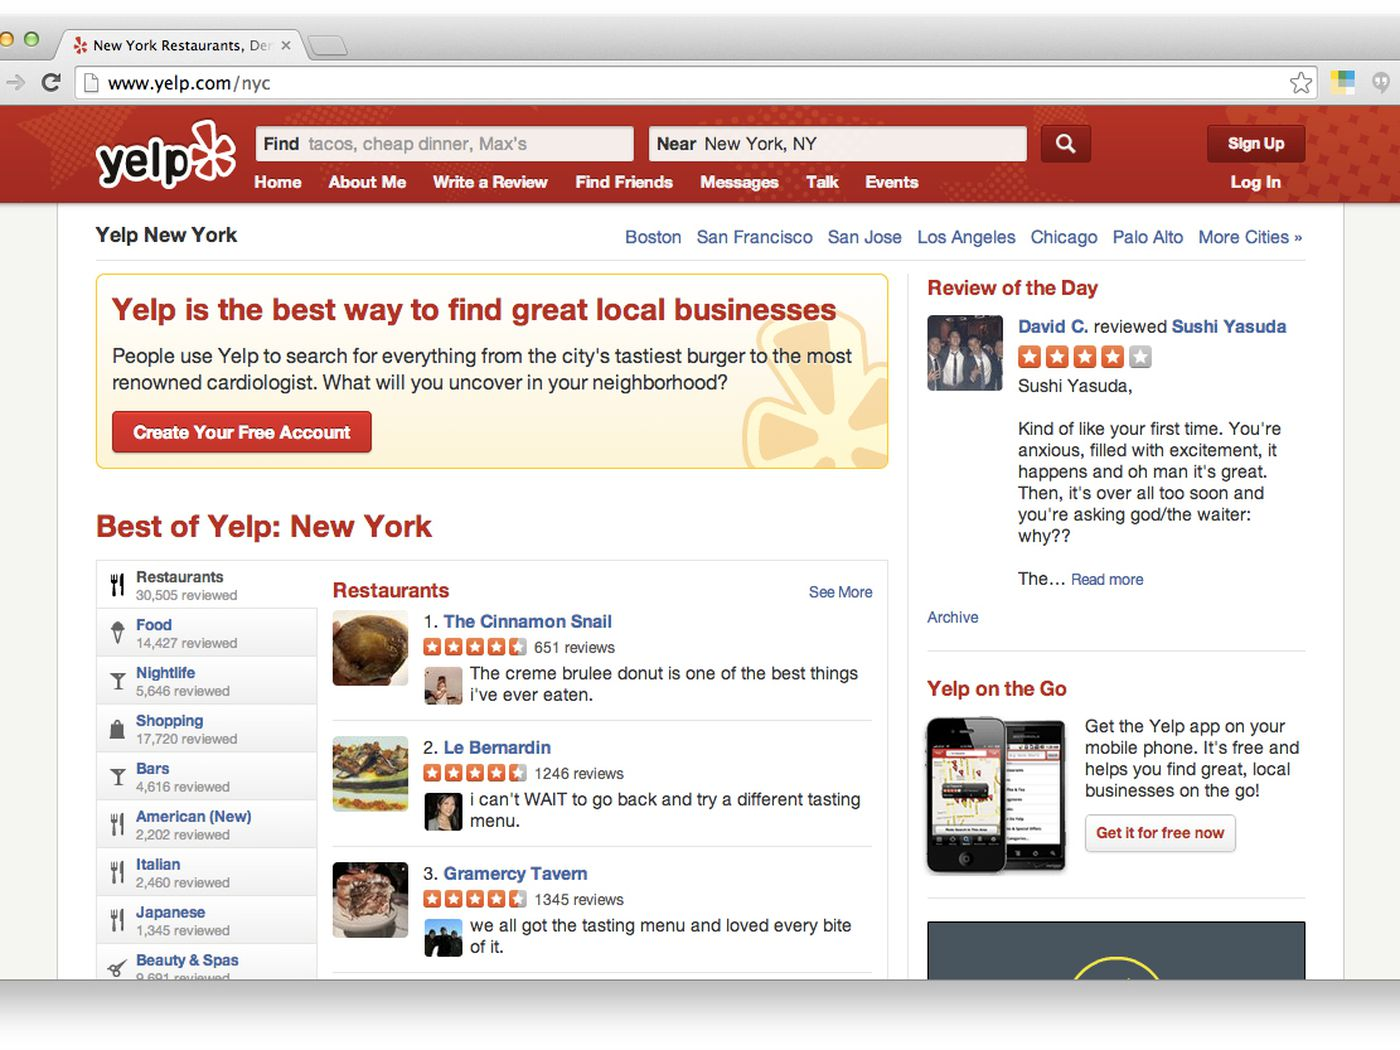 Restaurant reviews yelp - How The Nyc Health Dept Used Yelp To Track Unreported Food Poisoning Cases Eater